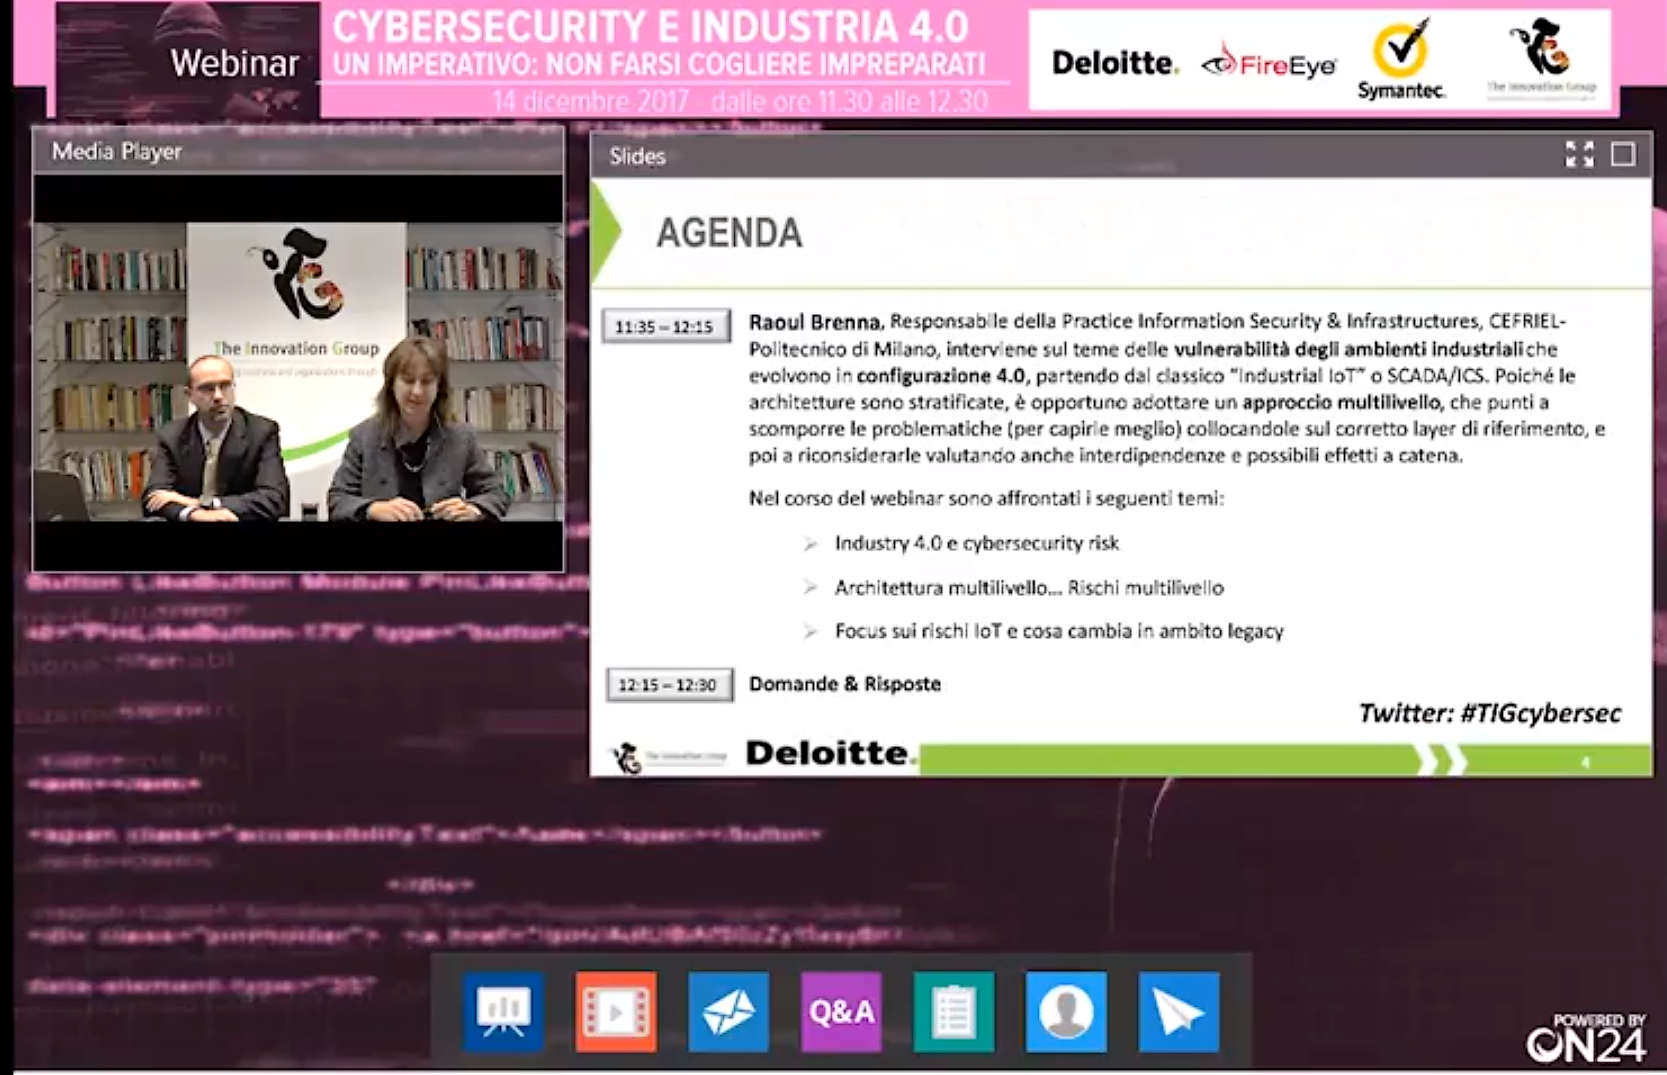 Cybersecurity industria